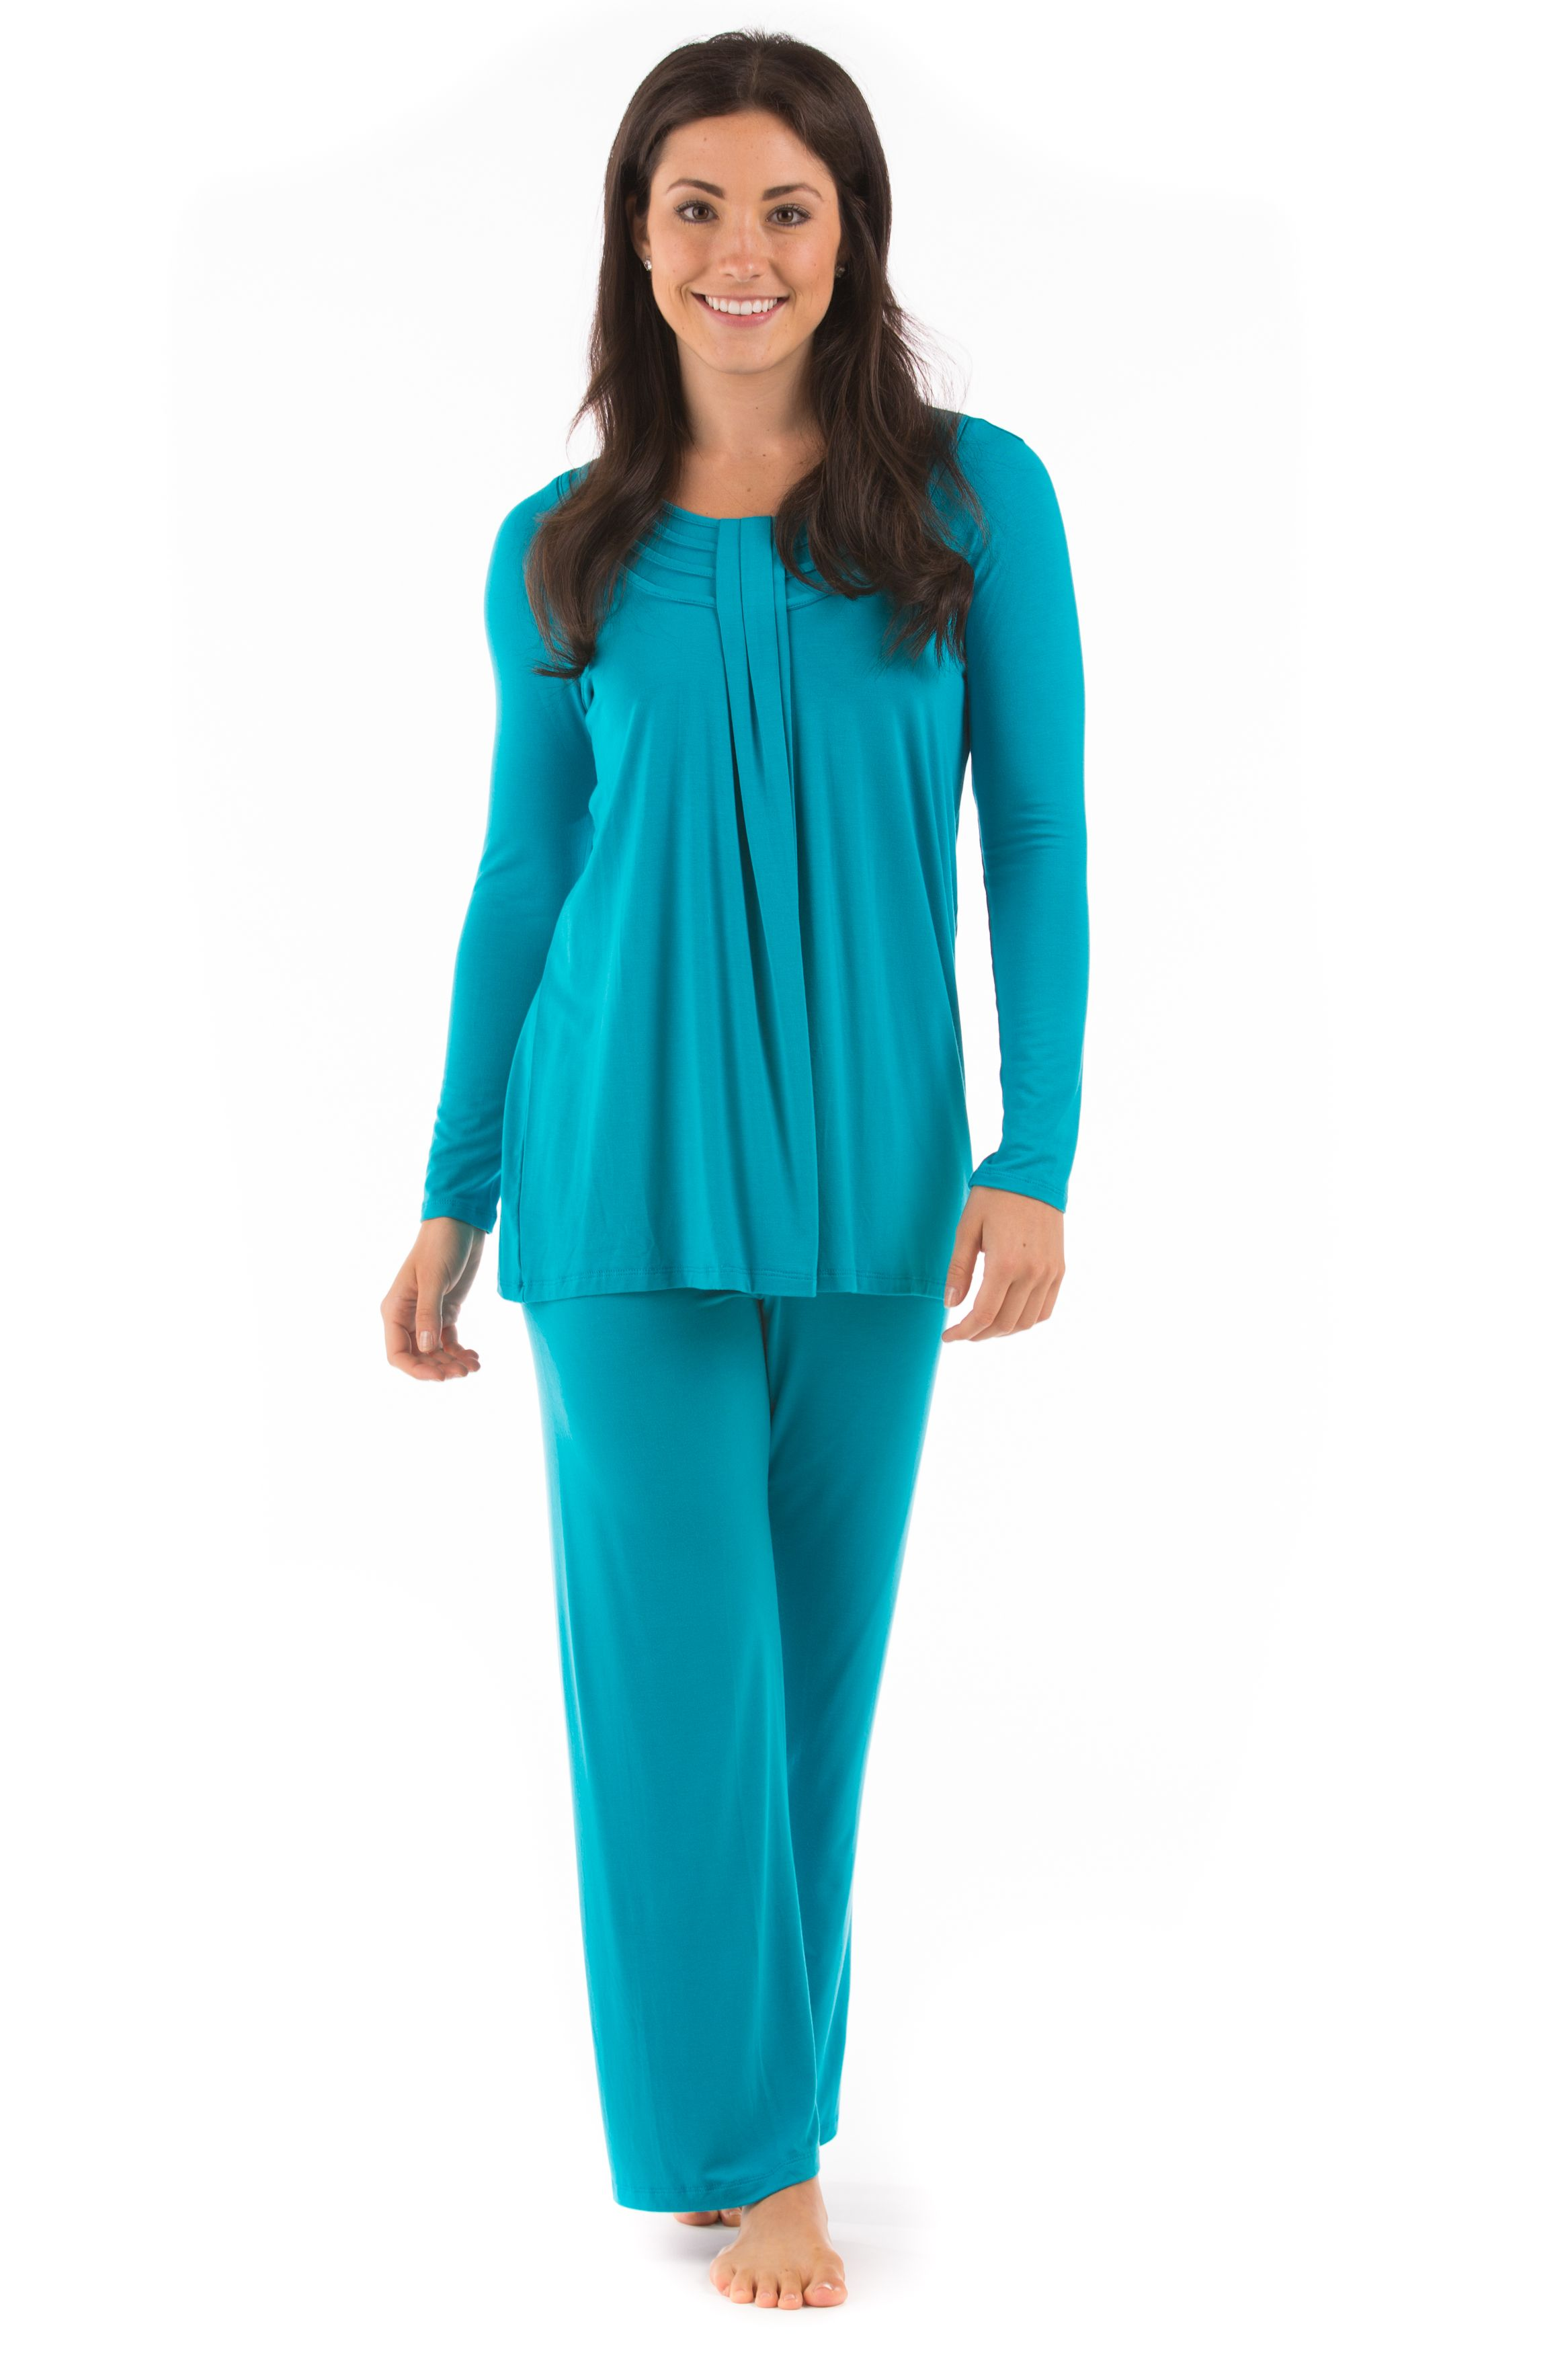 Serenity  Women s Luxury Bamboo Pajamas  socozy  BestPJsEver  TexereSilk.   49 Stay warm in the winter 0bf2ee27d